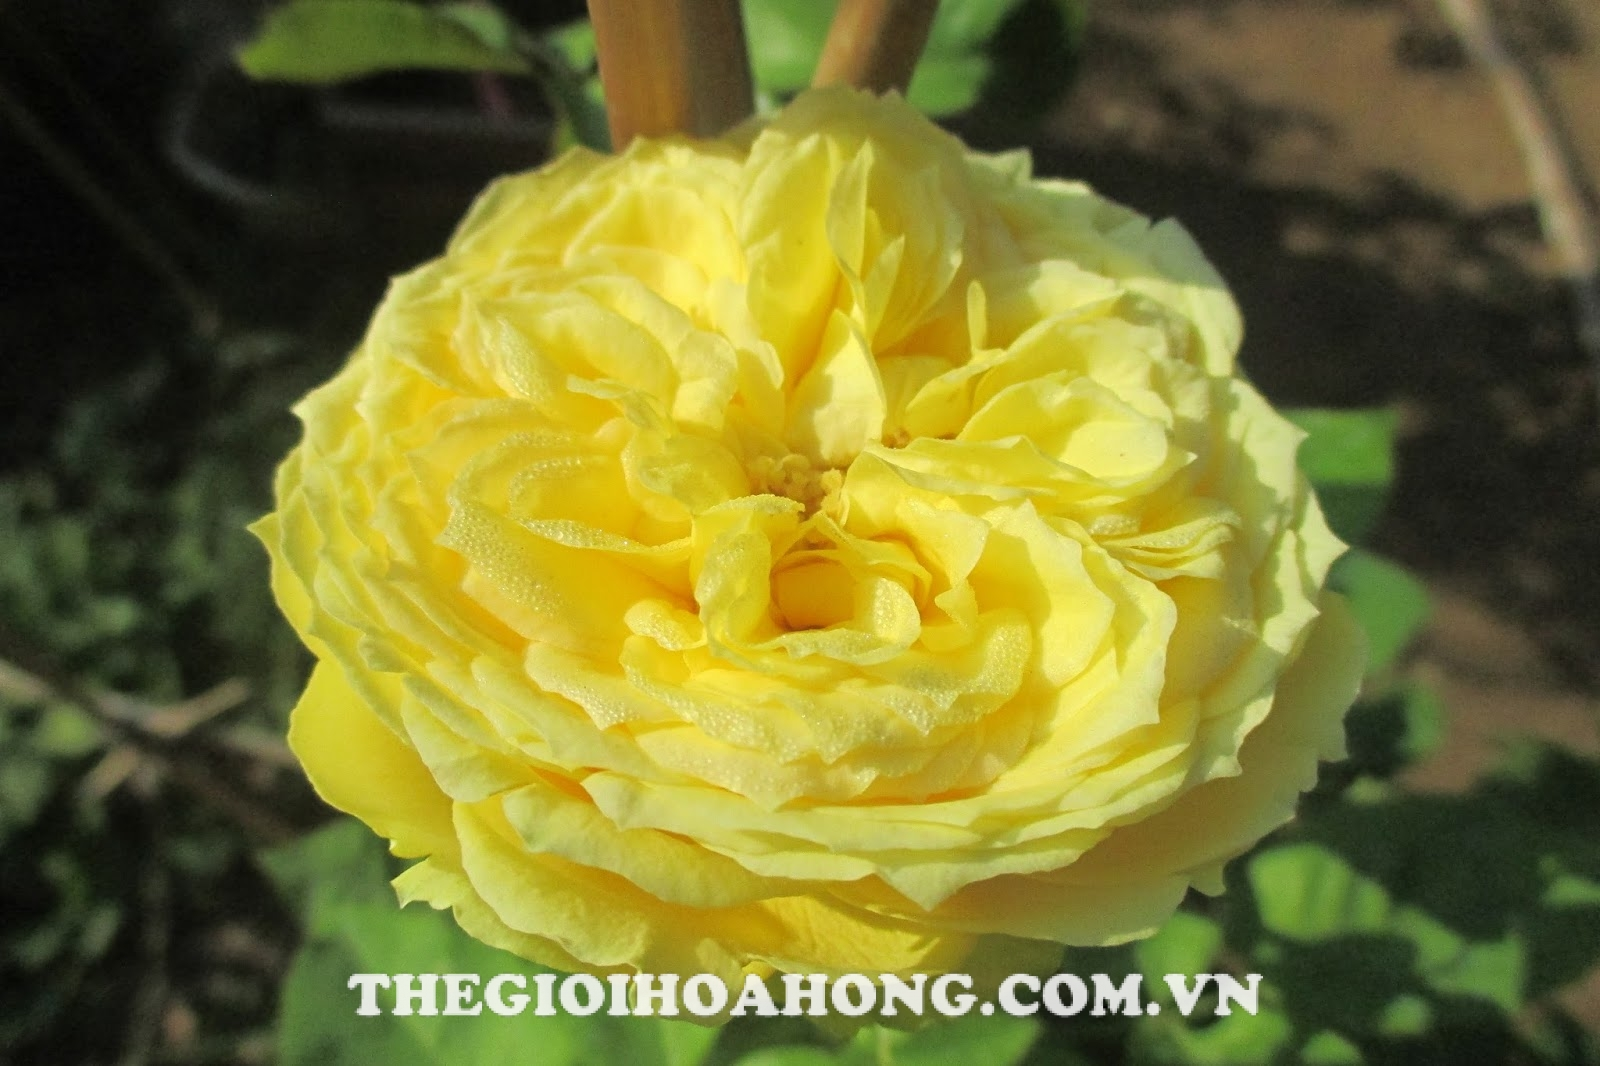 bong-hoa-hong-tree-rose-catalina-spray